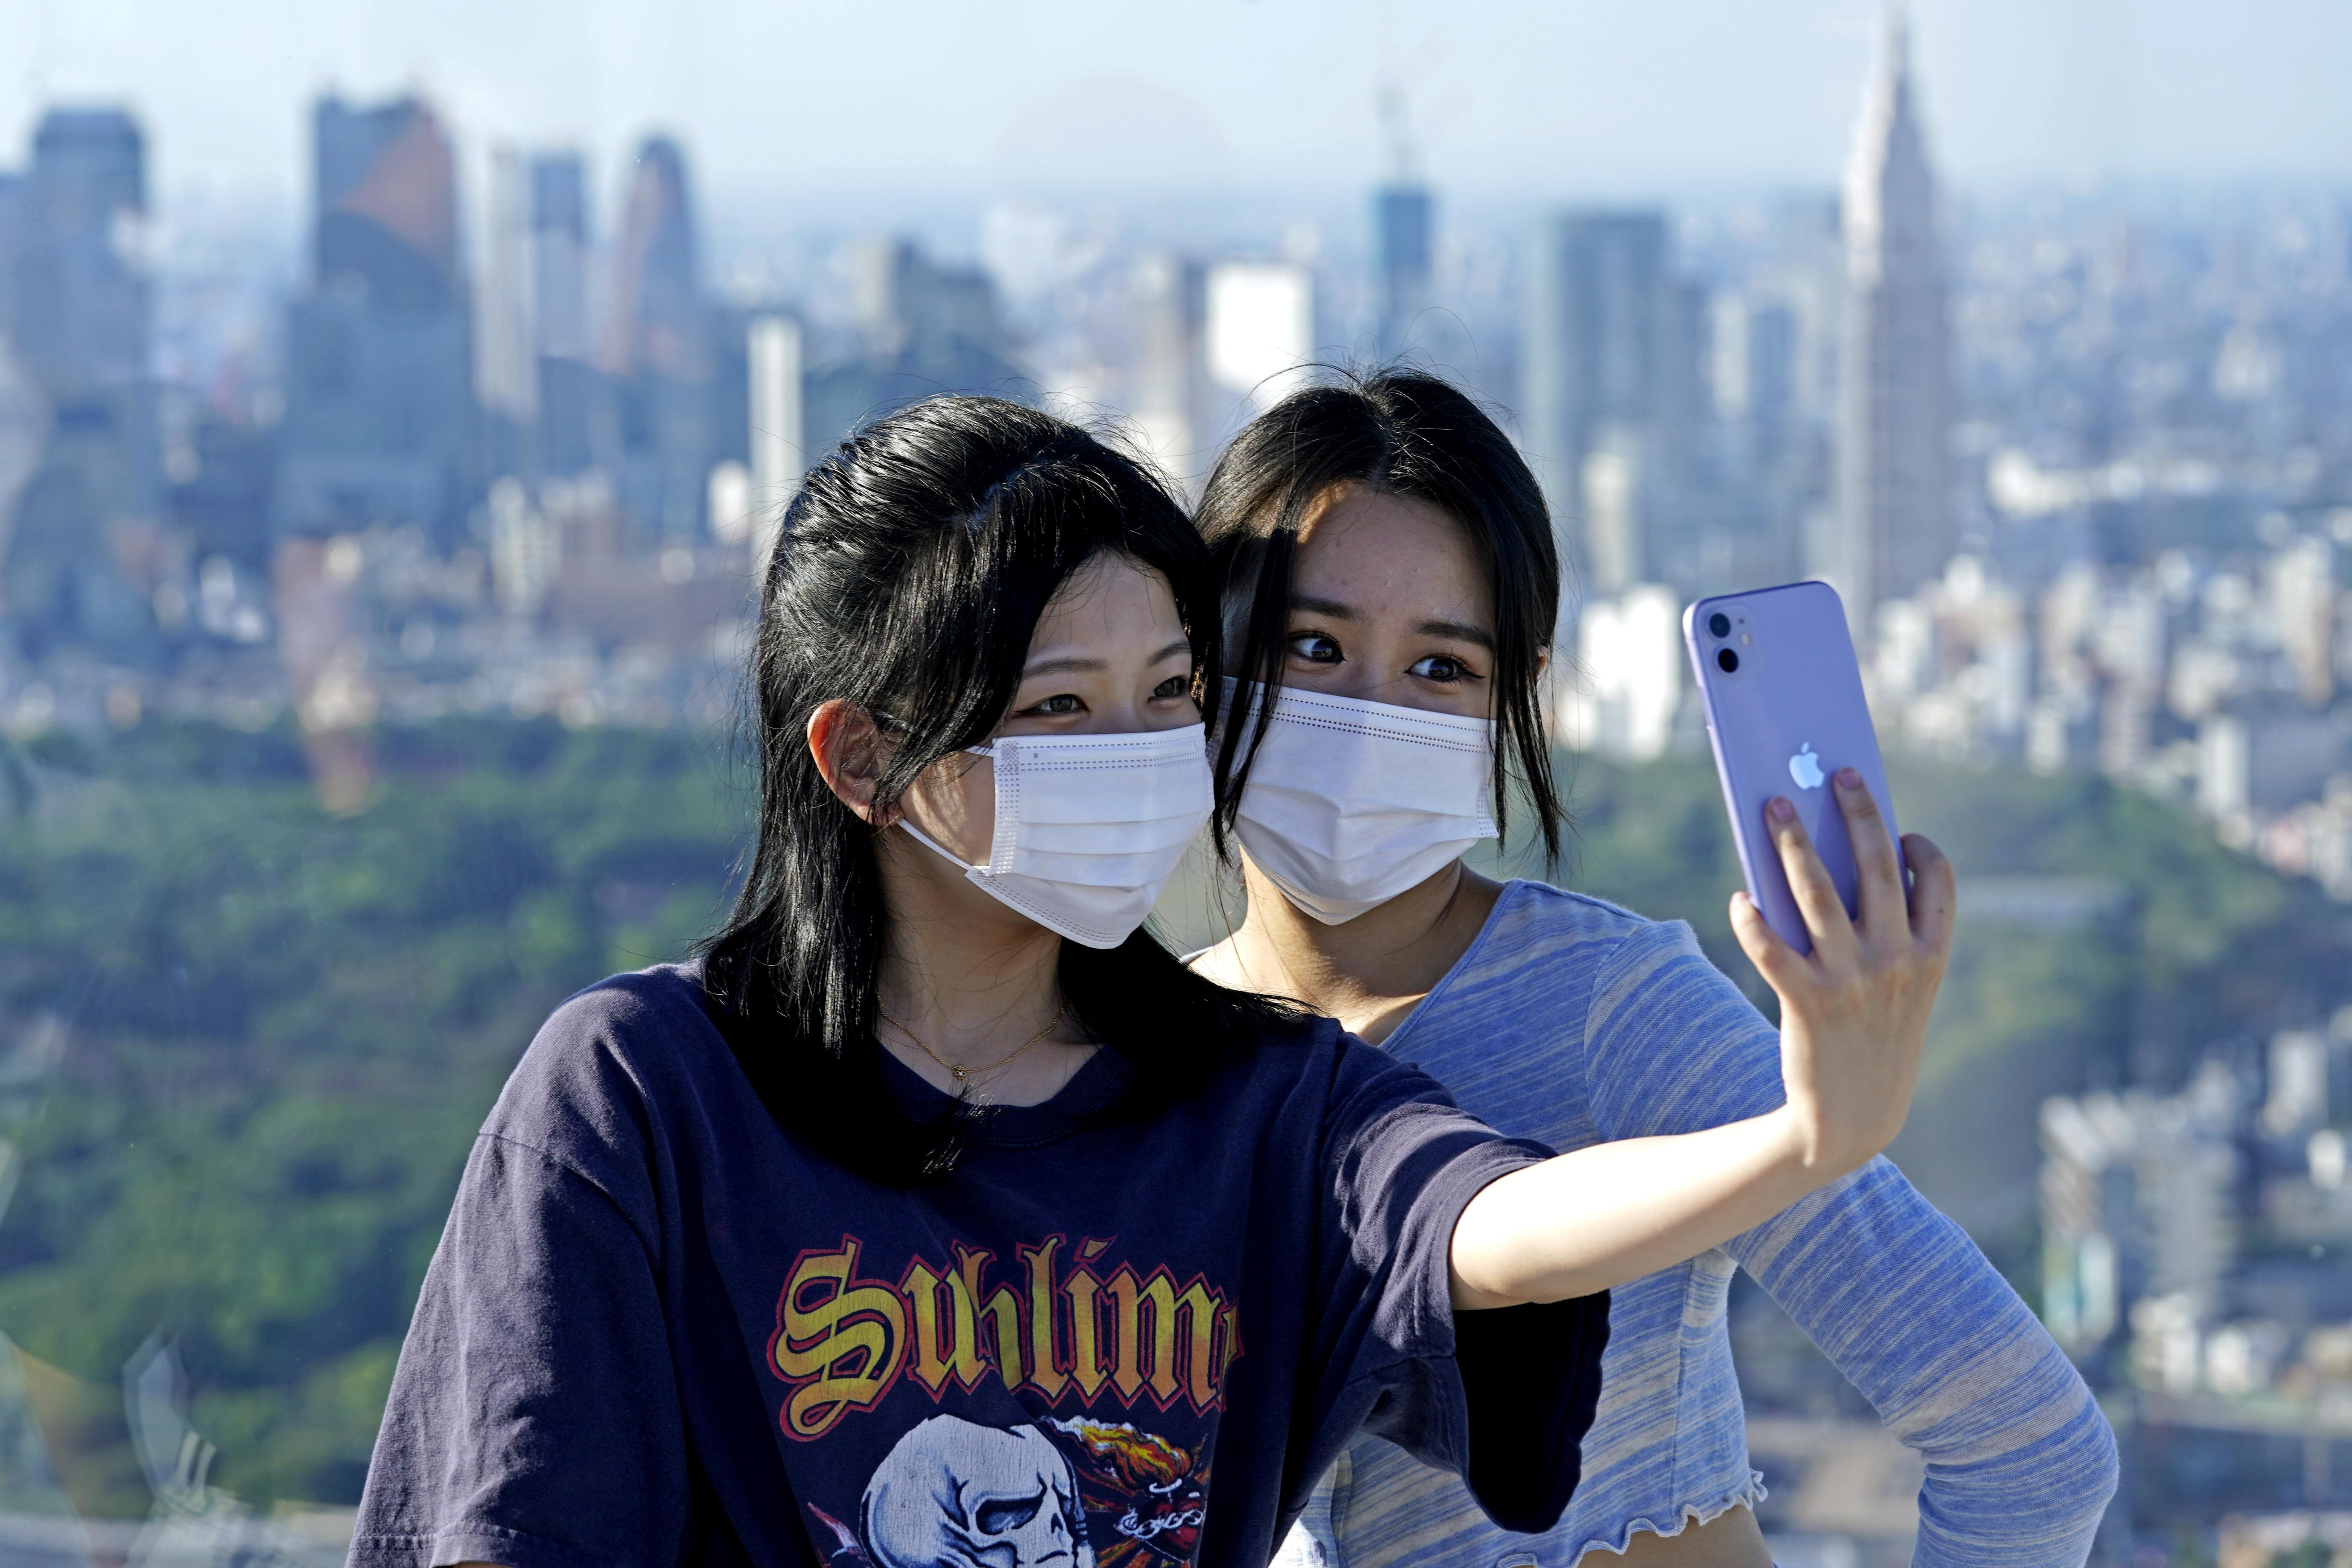 Two women take a selfie using a smartphone from a viewing deck overlooking a city skyline.